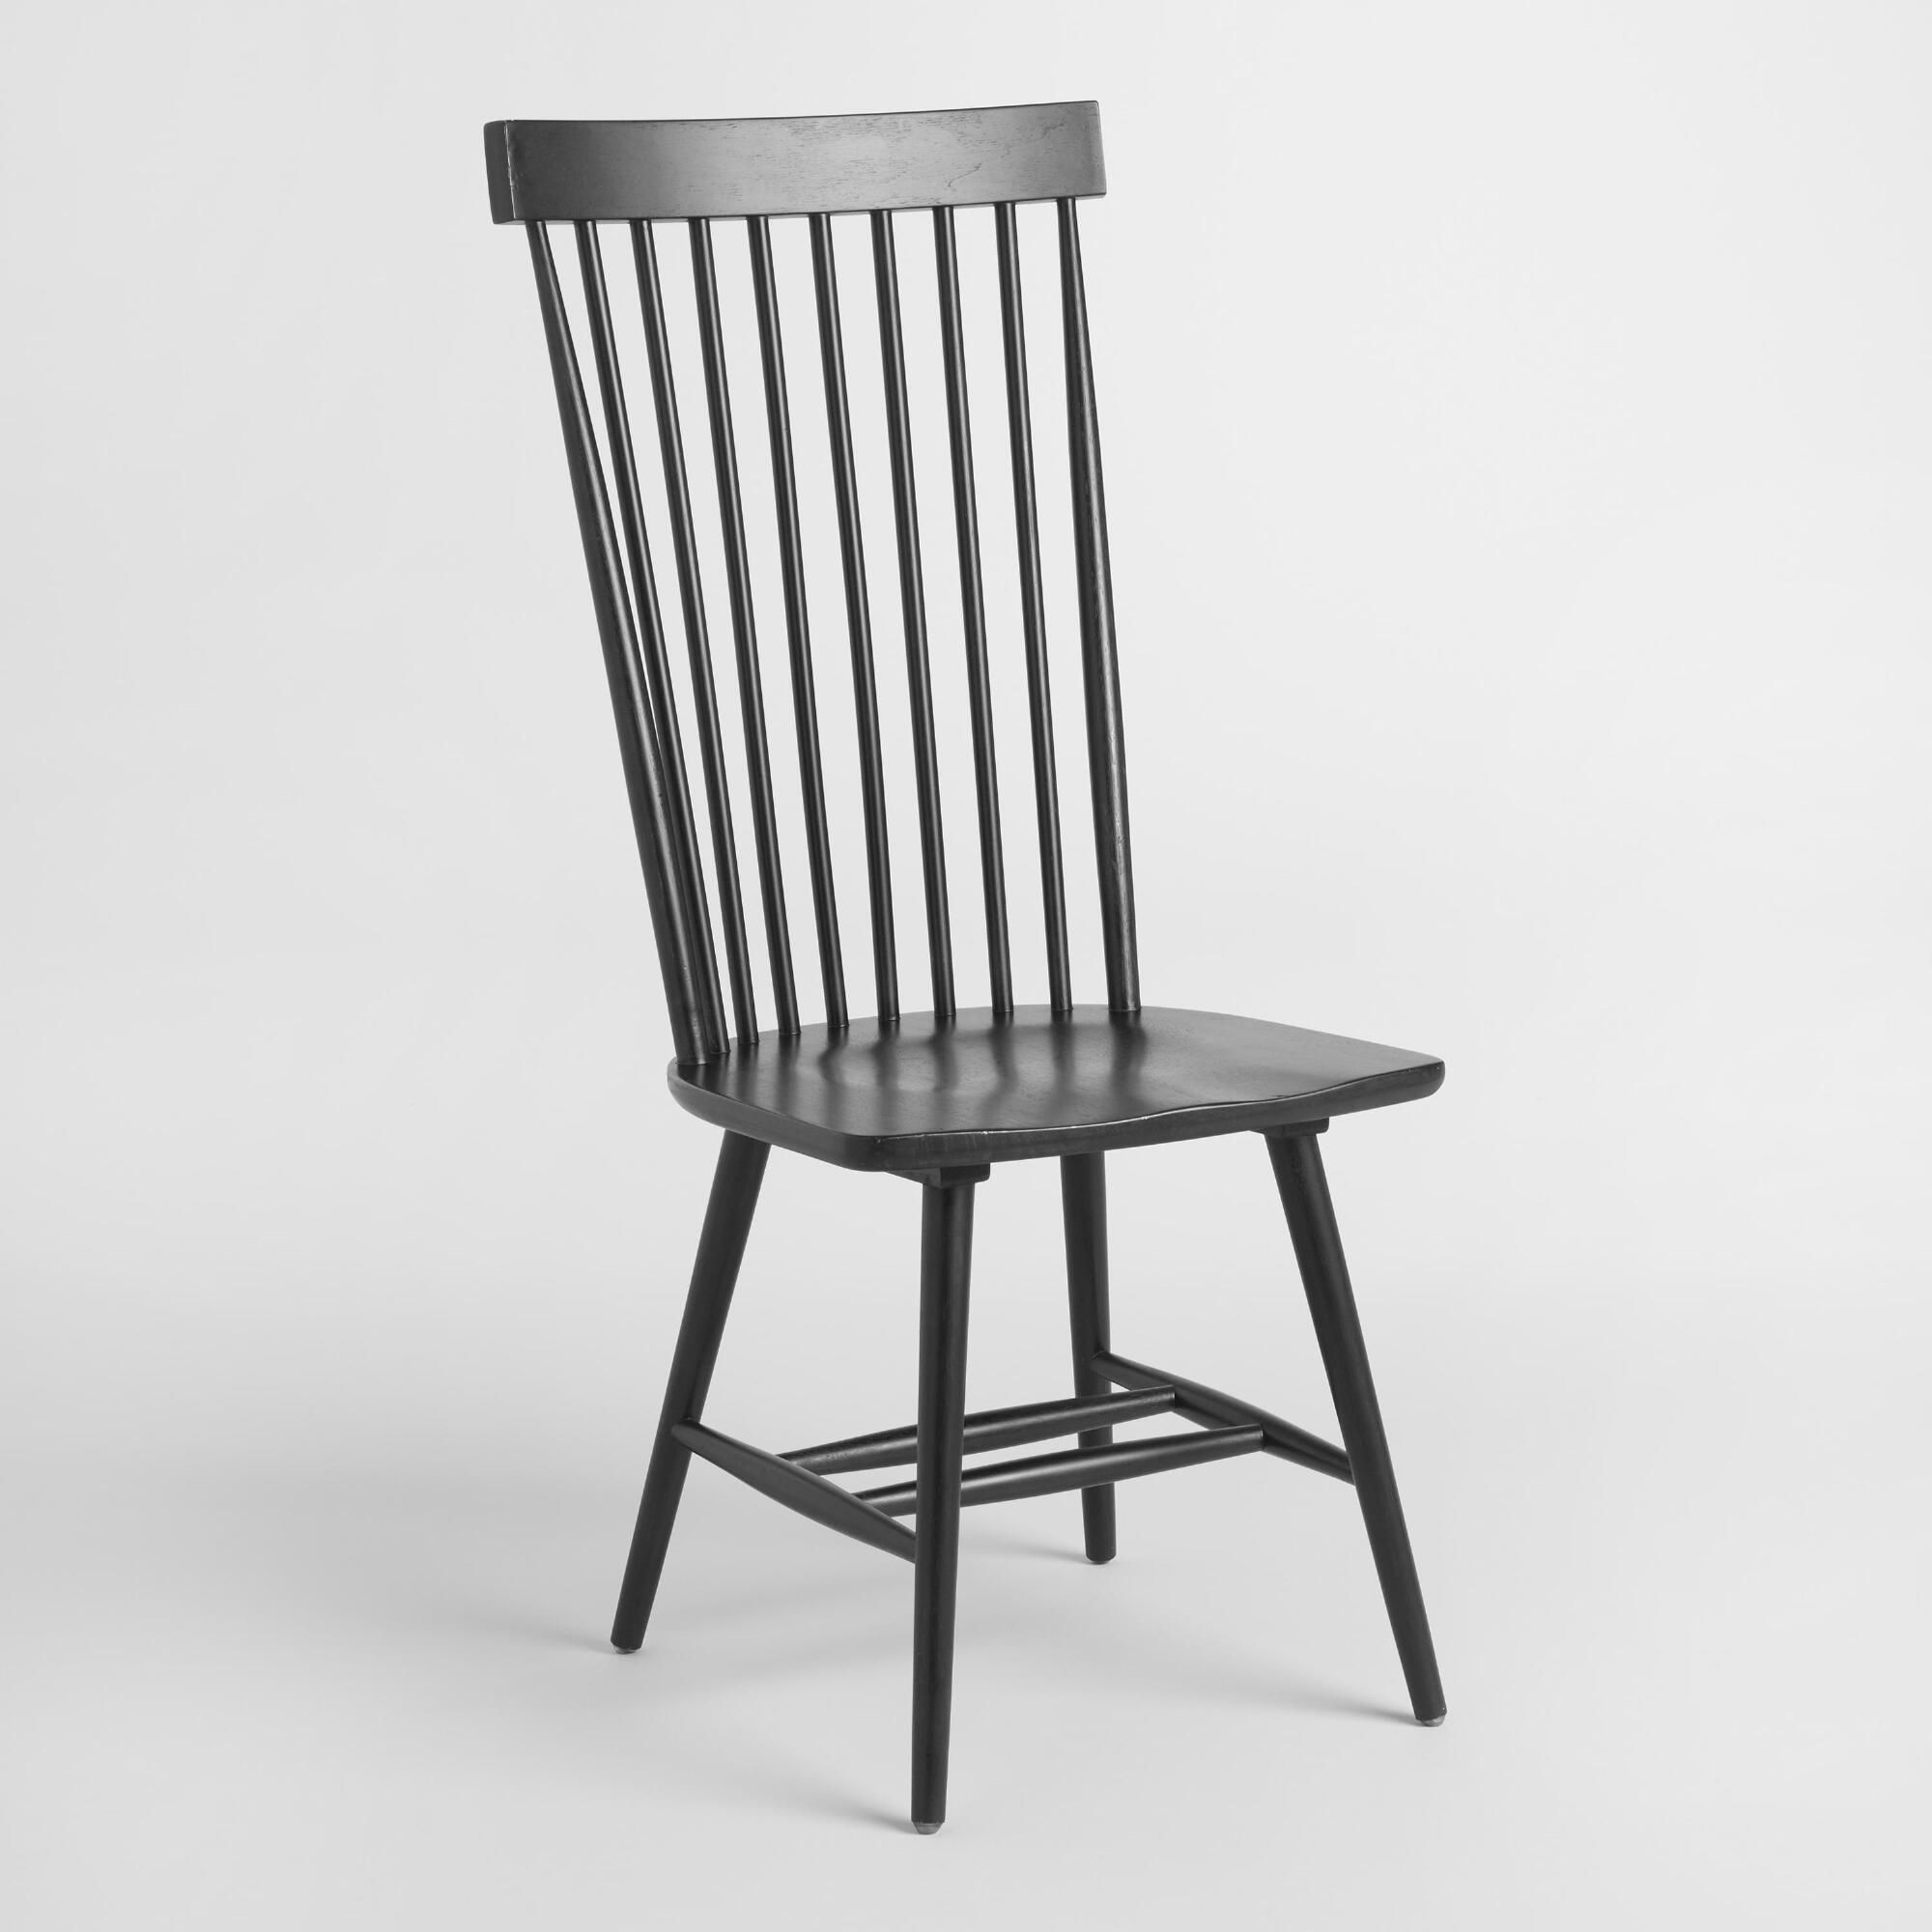 Black wood kamron high back windsor chairs set of 2 by